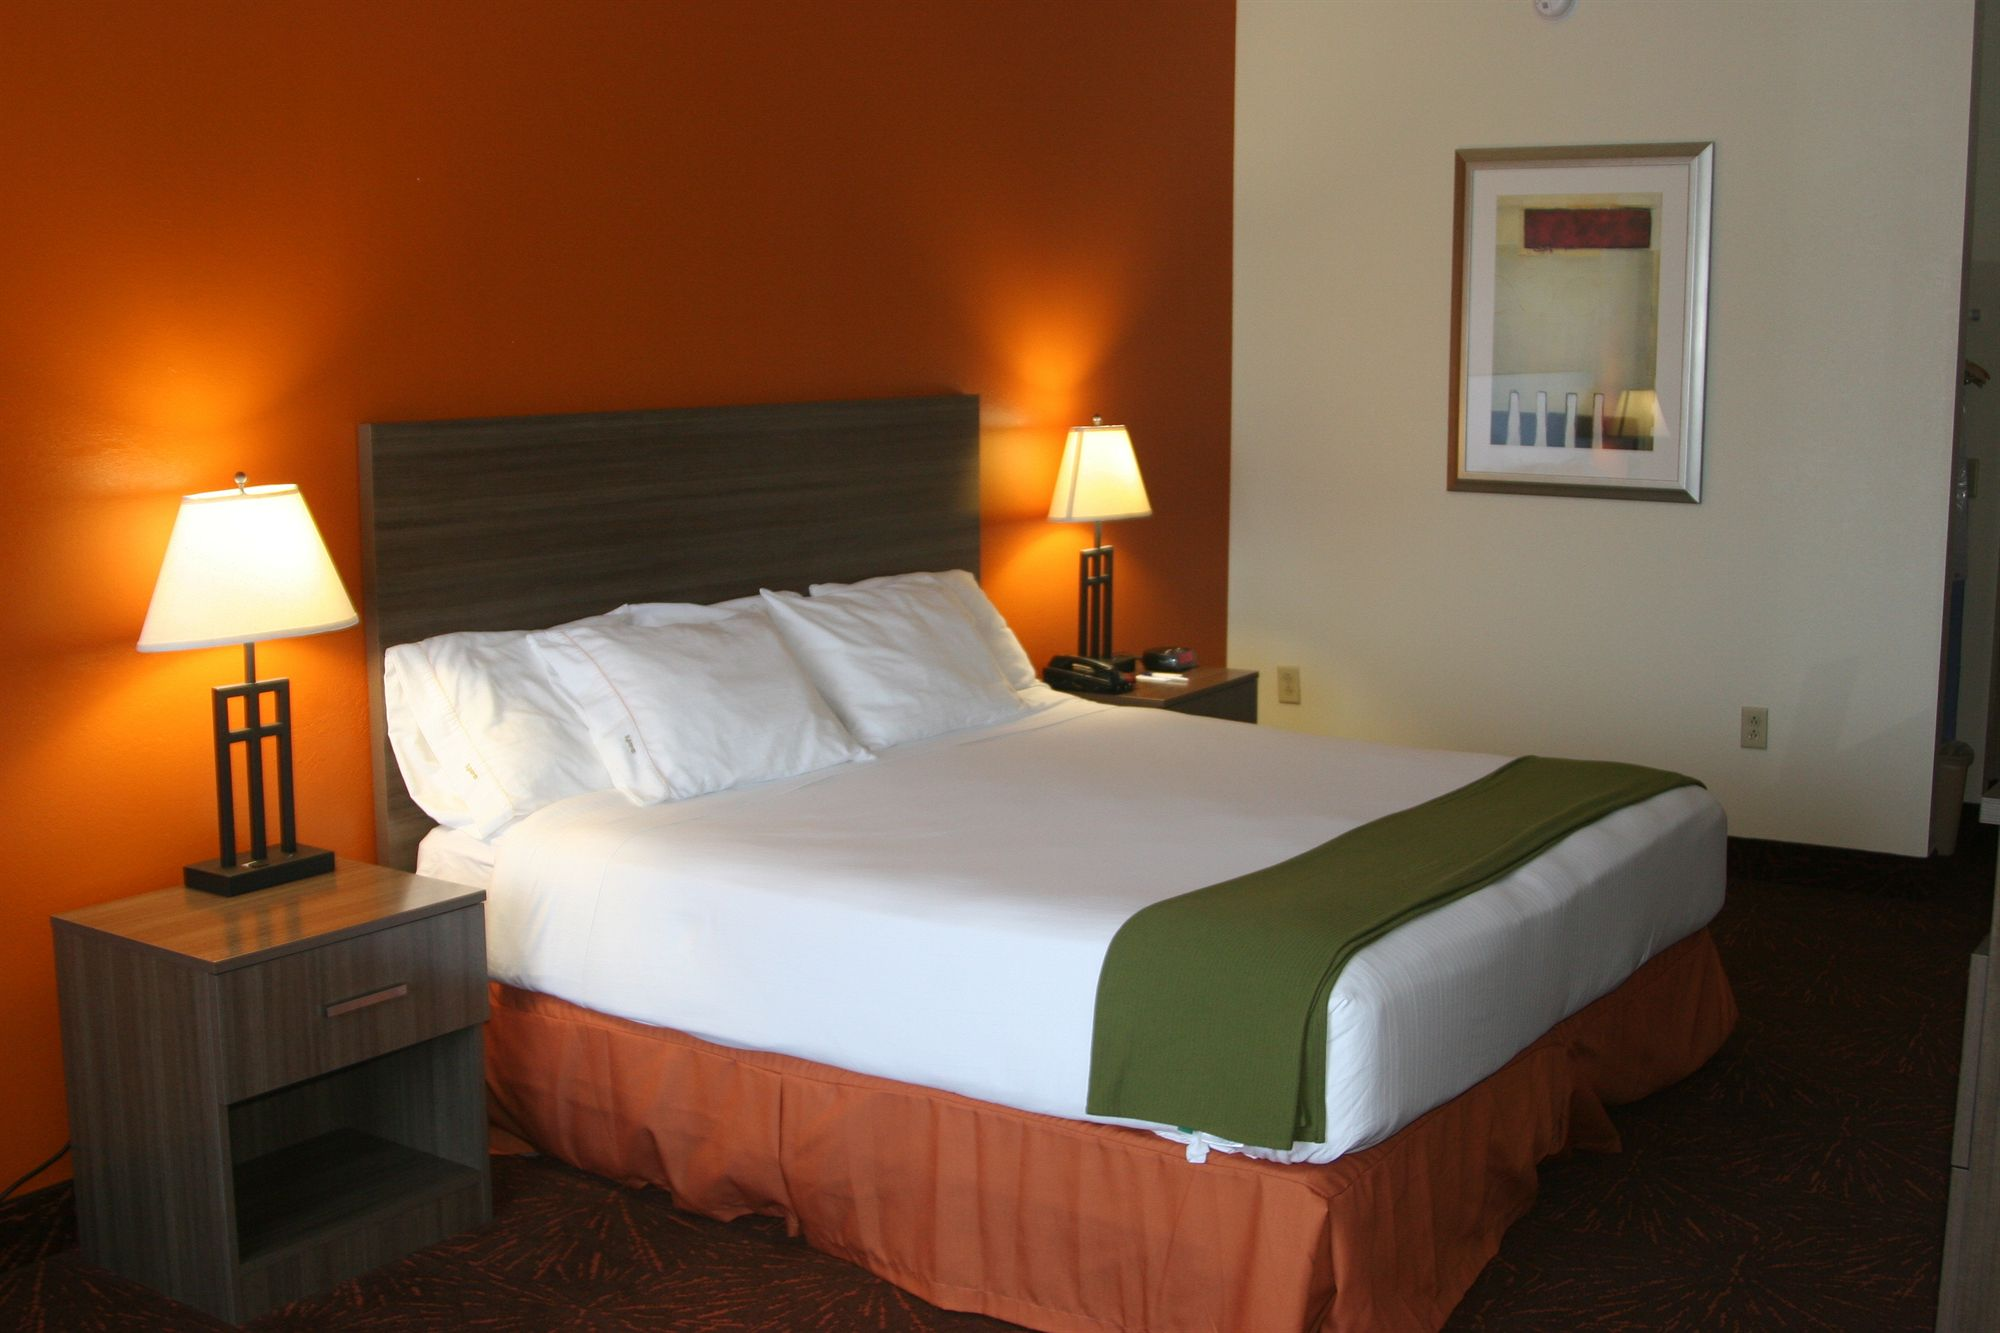 Holiday Inn Express Hotel & Suites Chattanooga-Lookout Mtn in Chattanooga, TN